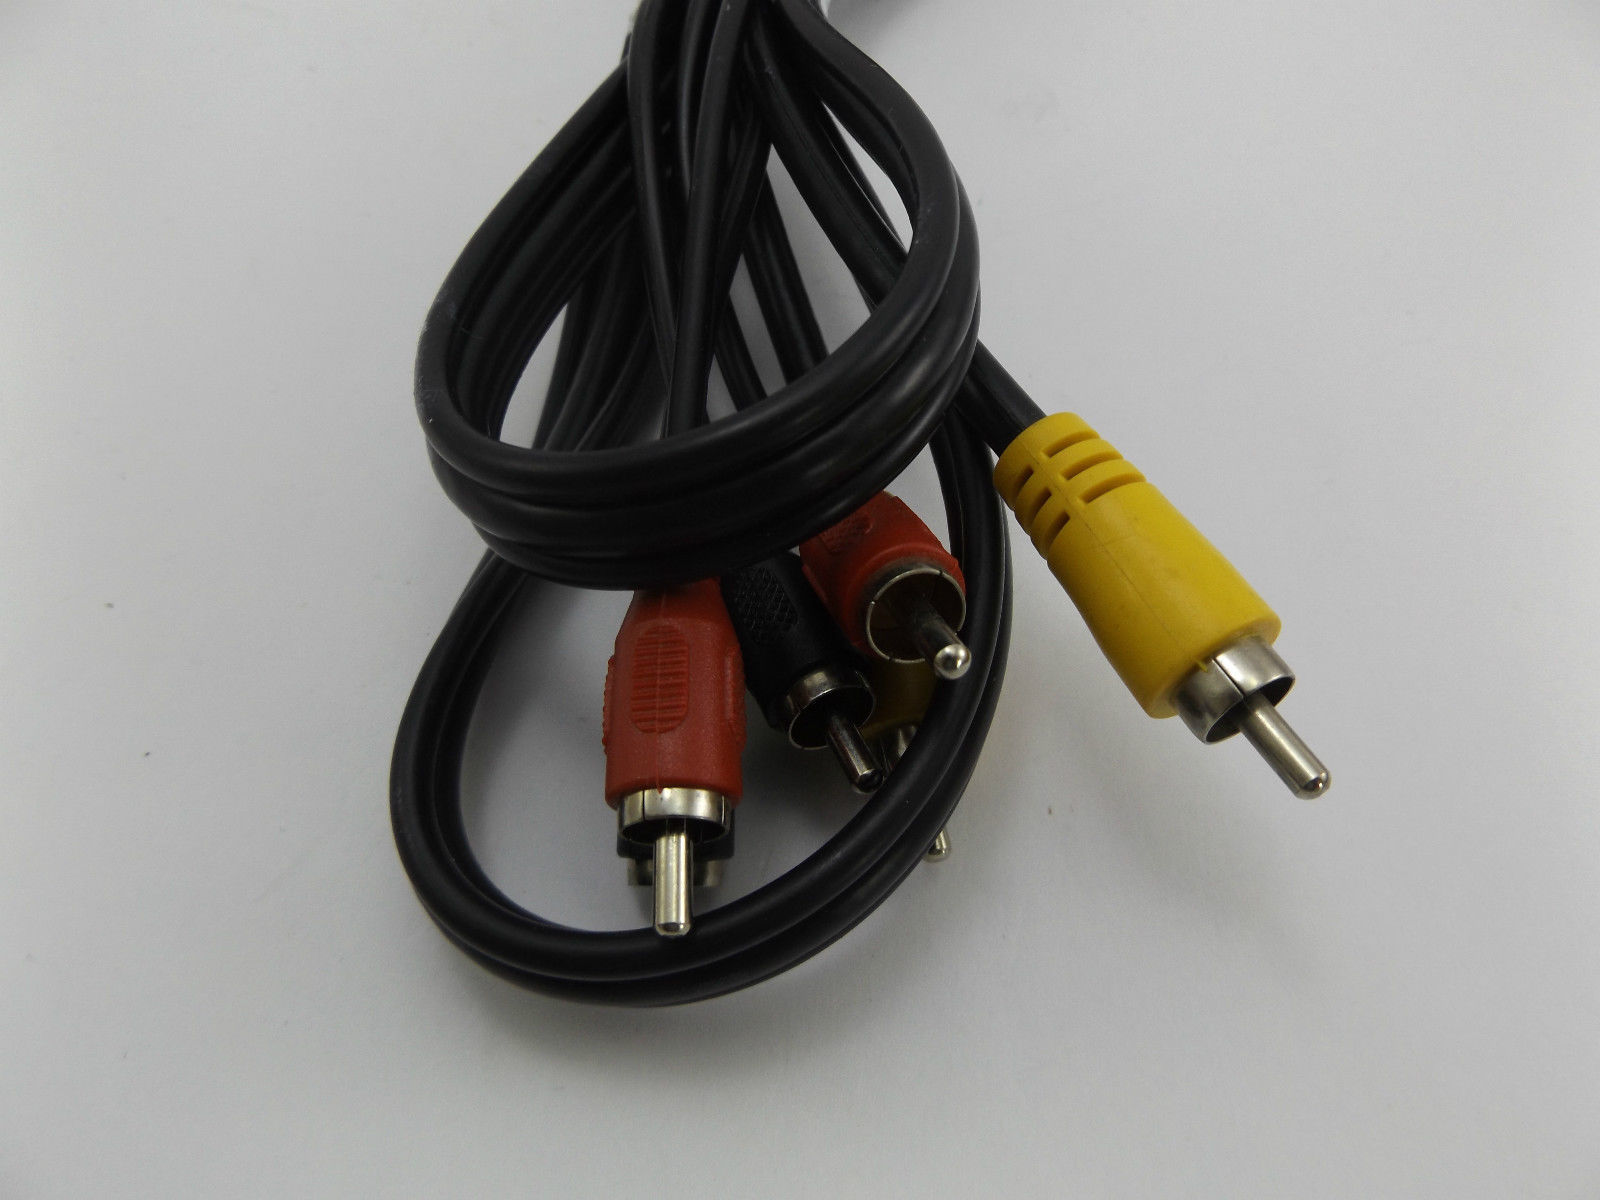 1.6m 3 Phono RCAs to 3 Phonos RCA Lead - Video Yellow & Black And Red Composite